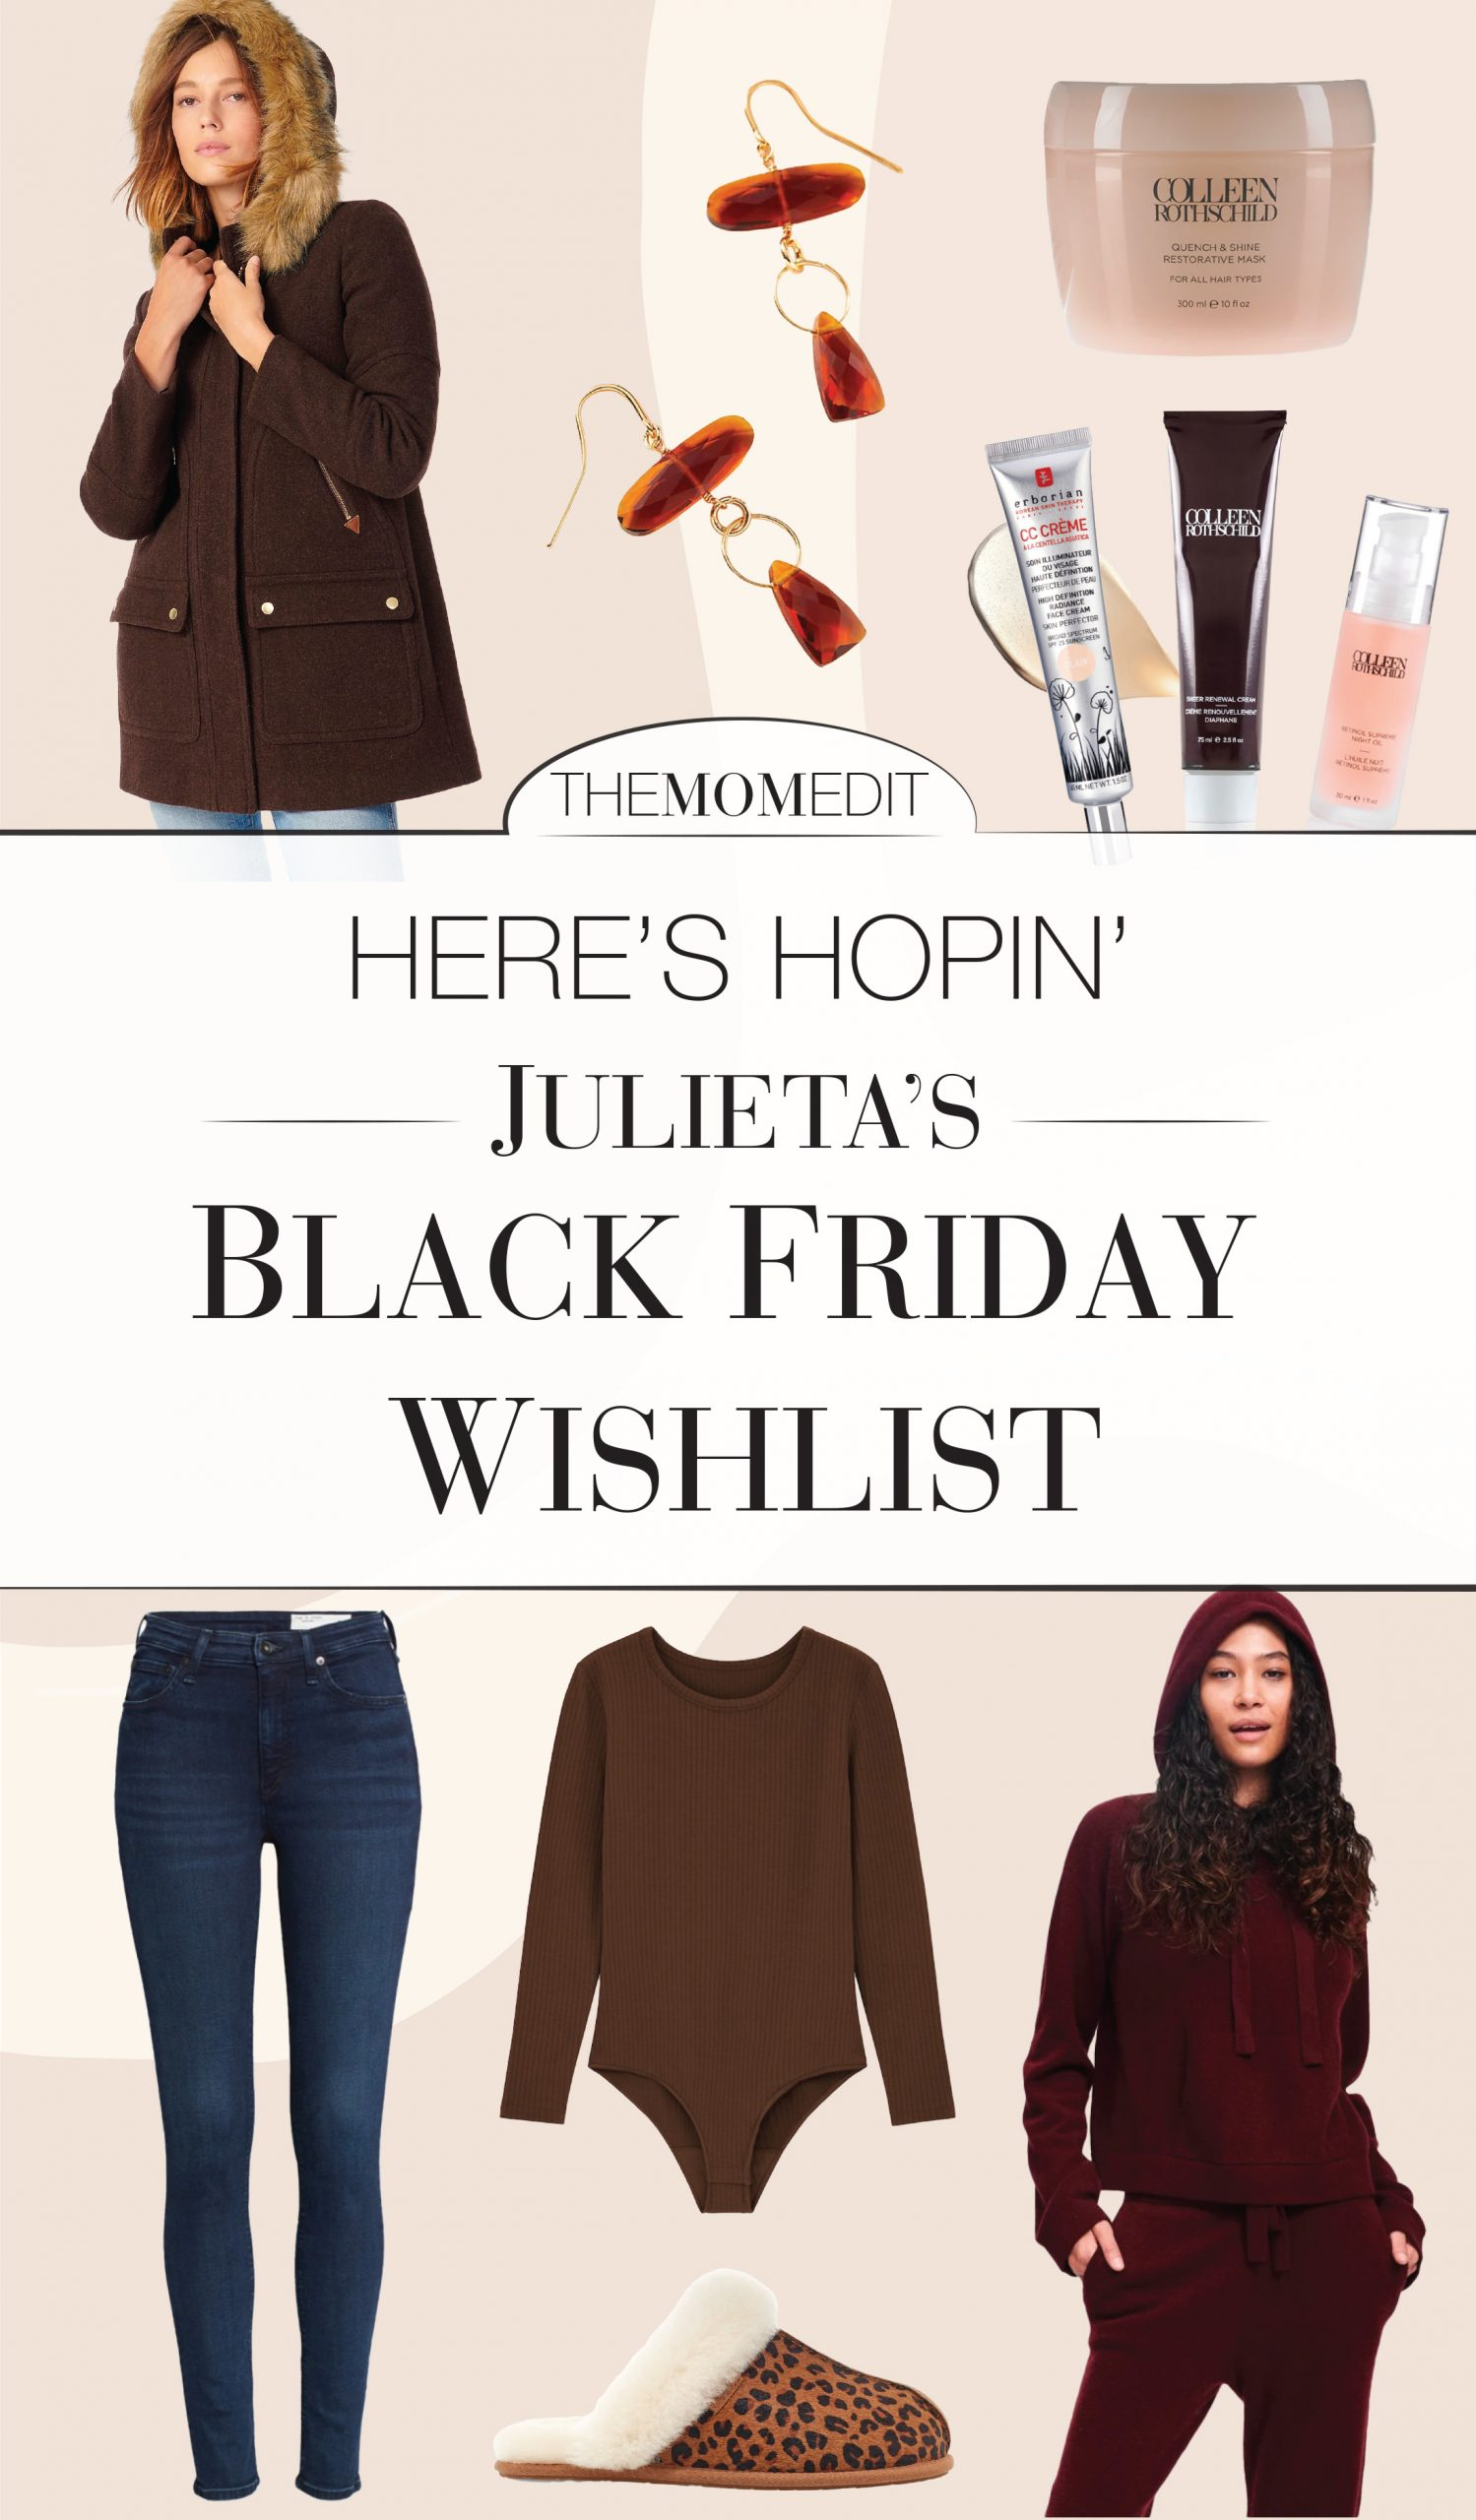 West Elm for home, Colleen Rothschild for skin, Uniqlo HEATTECH layers to stay warm...we're prepping for winter w/ our Black Friday shopping list.